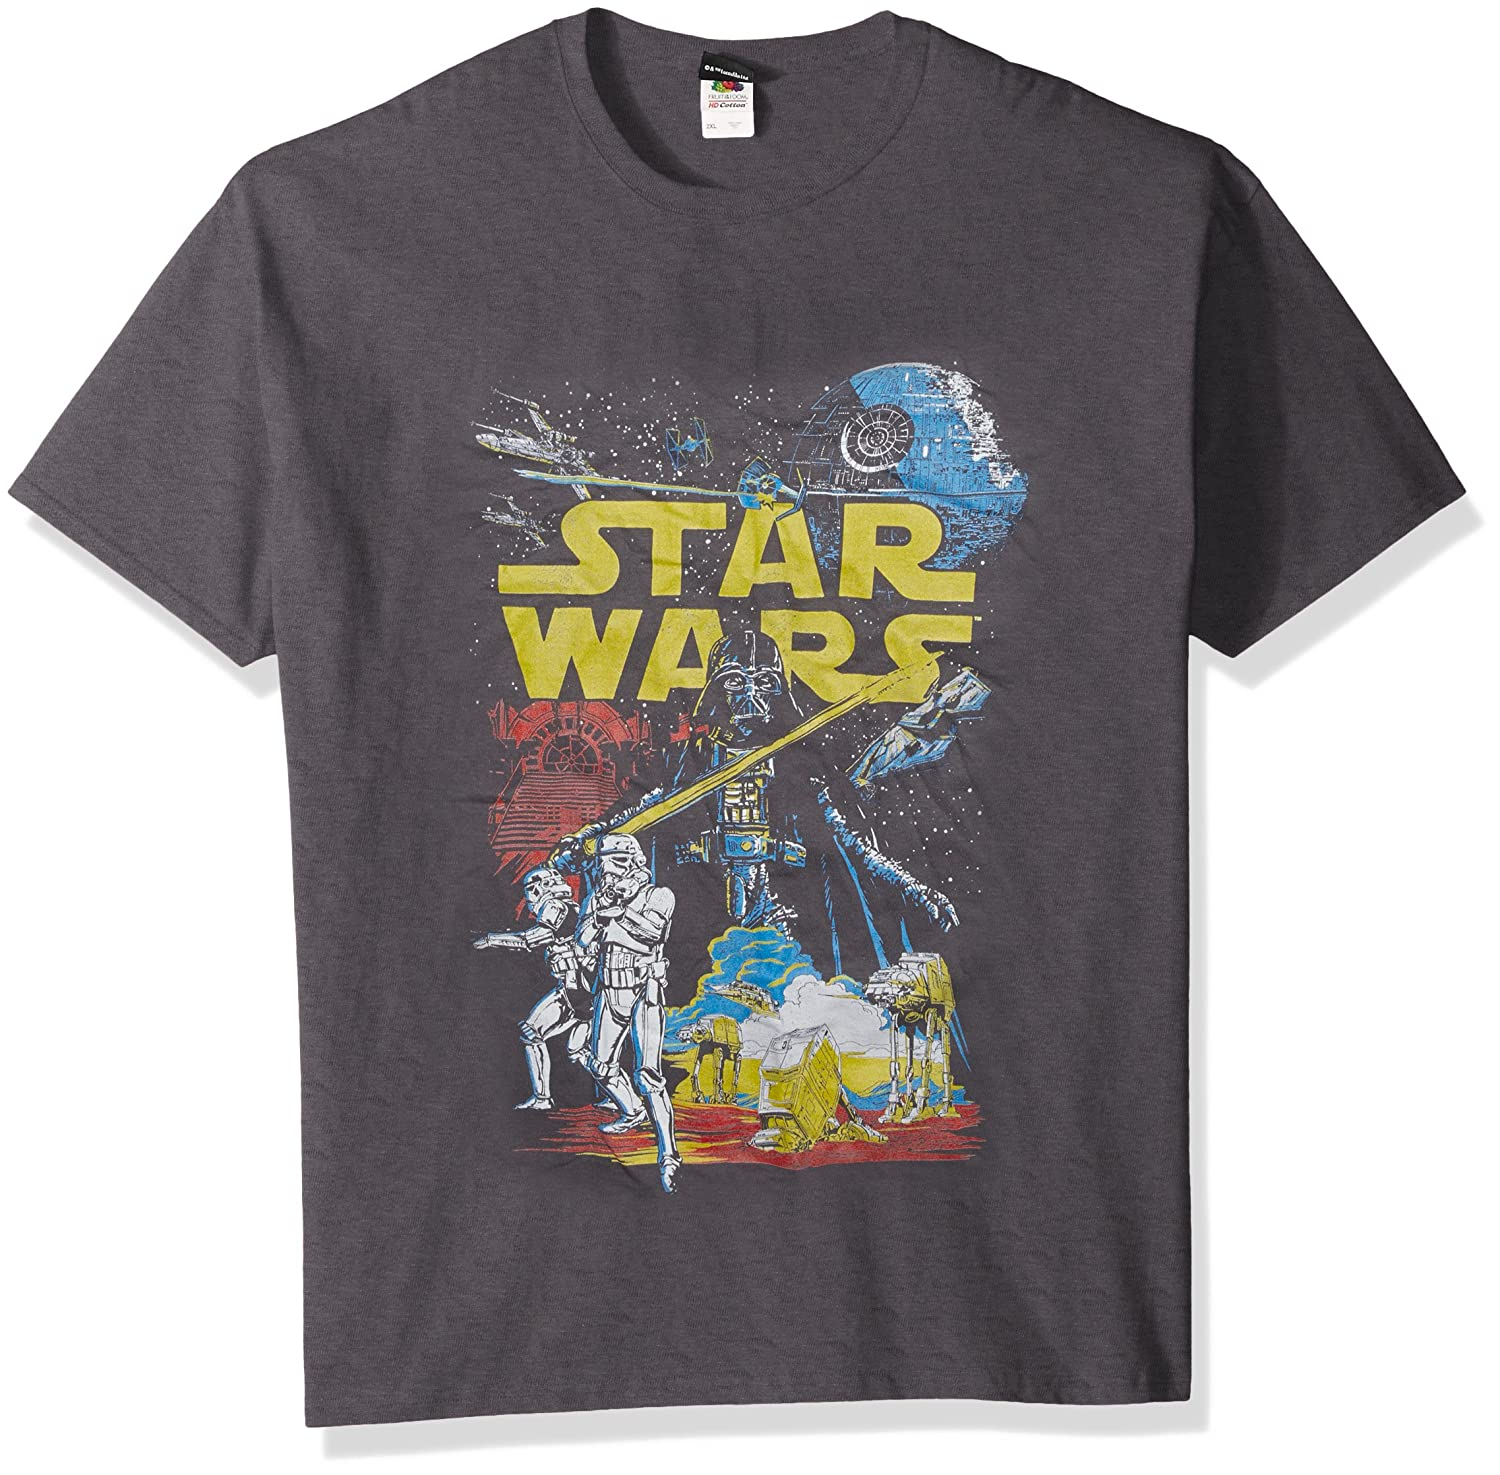 e68387fe1bc Amazon.com  Star Wars Men s Rebel Classic Graphic T-Shirt  Clothing